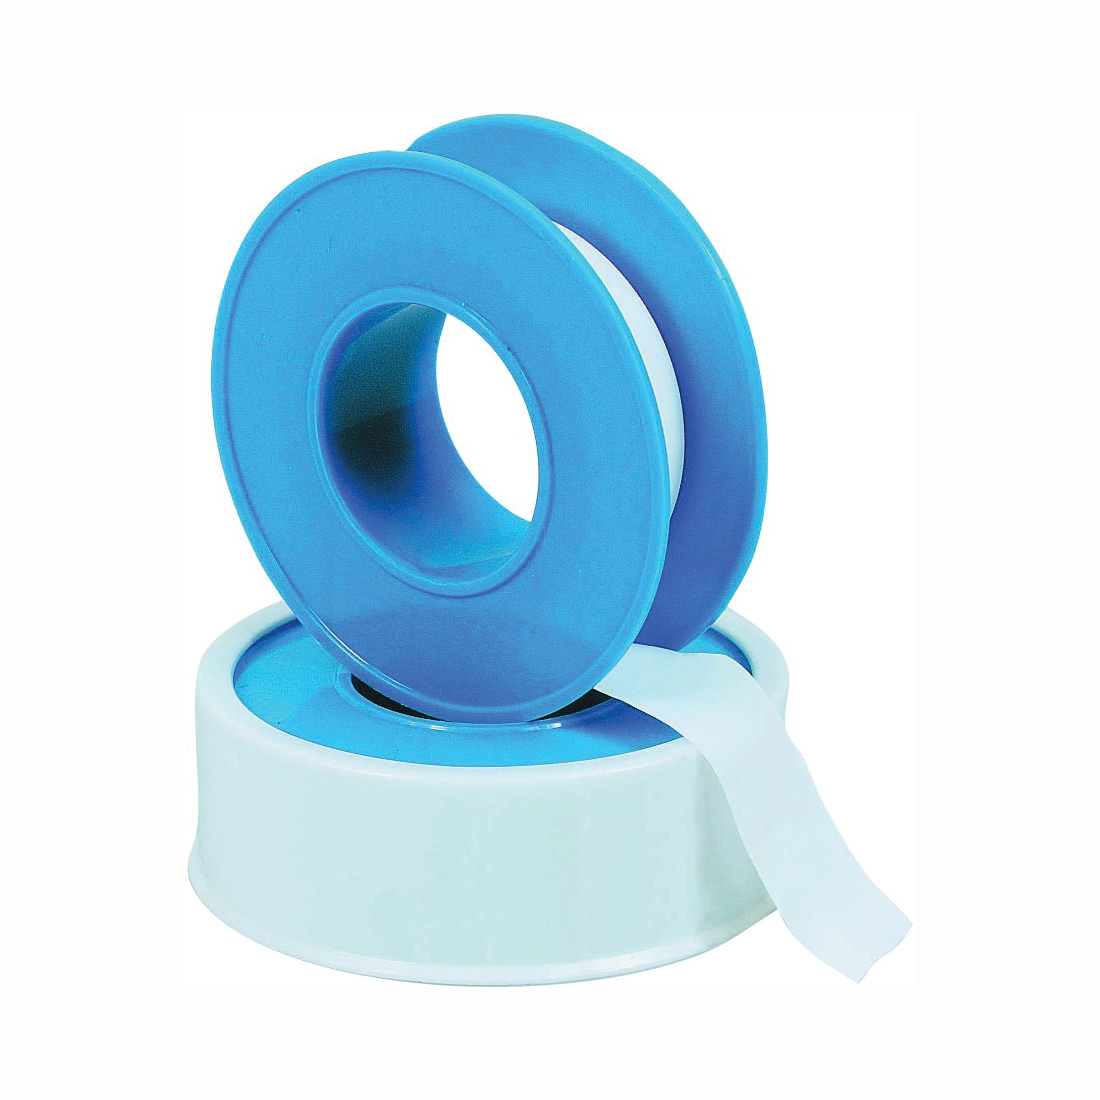 Picture of HARVEY 017252-144 Thread Seal Tape, 520 in L, 3/4 in W, PTFE, Blue/White